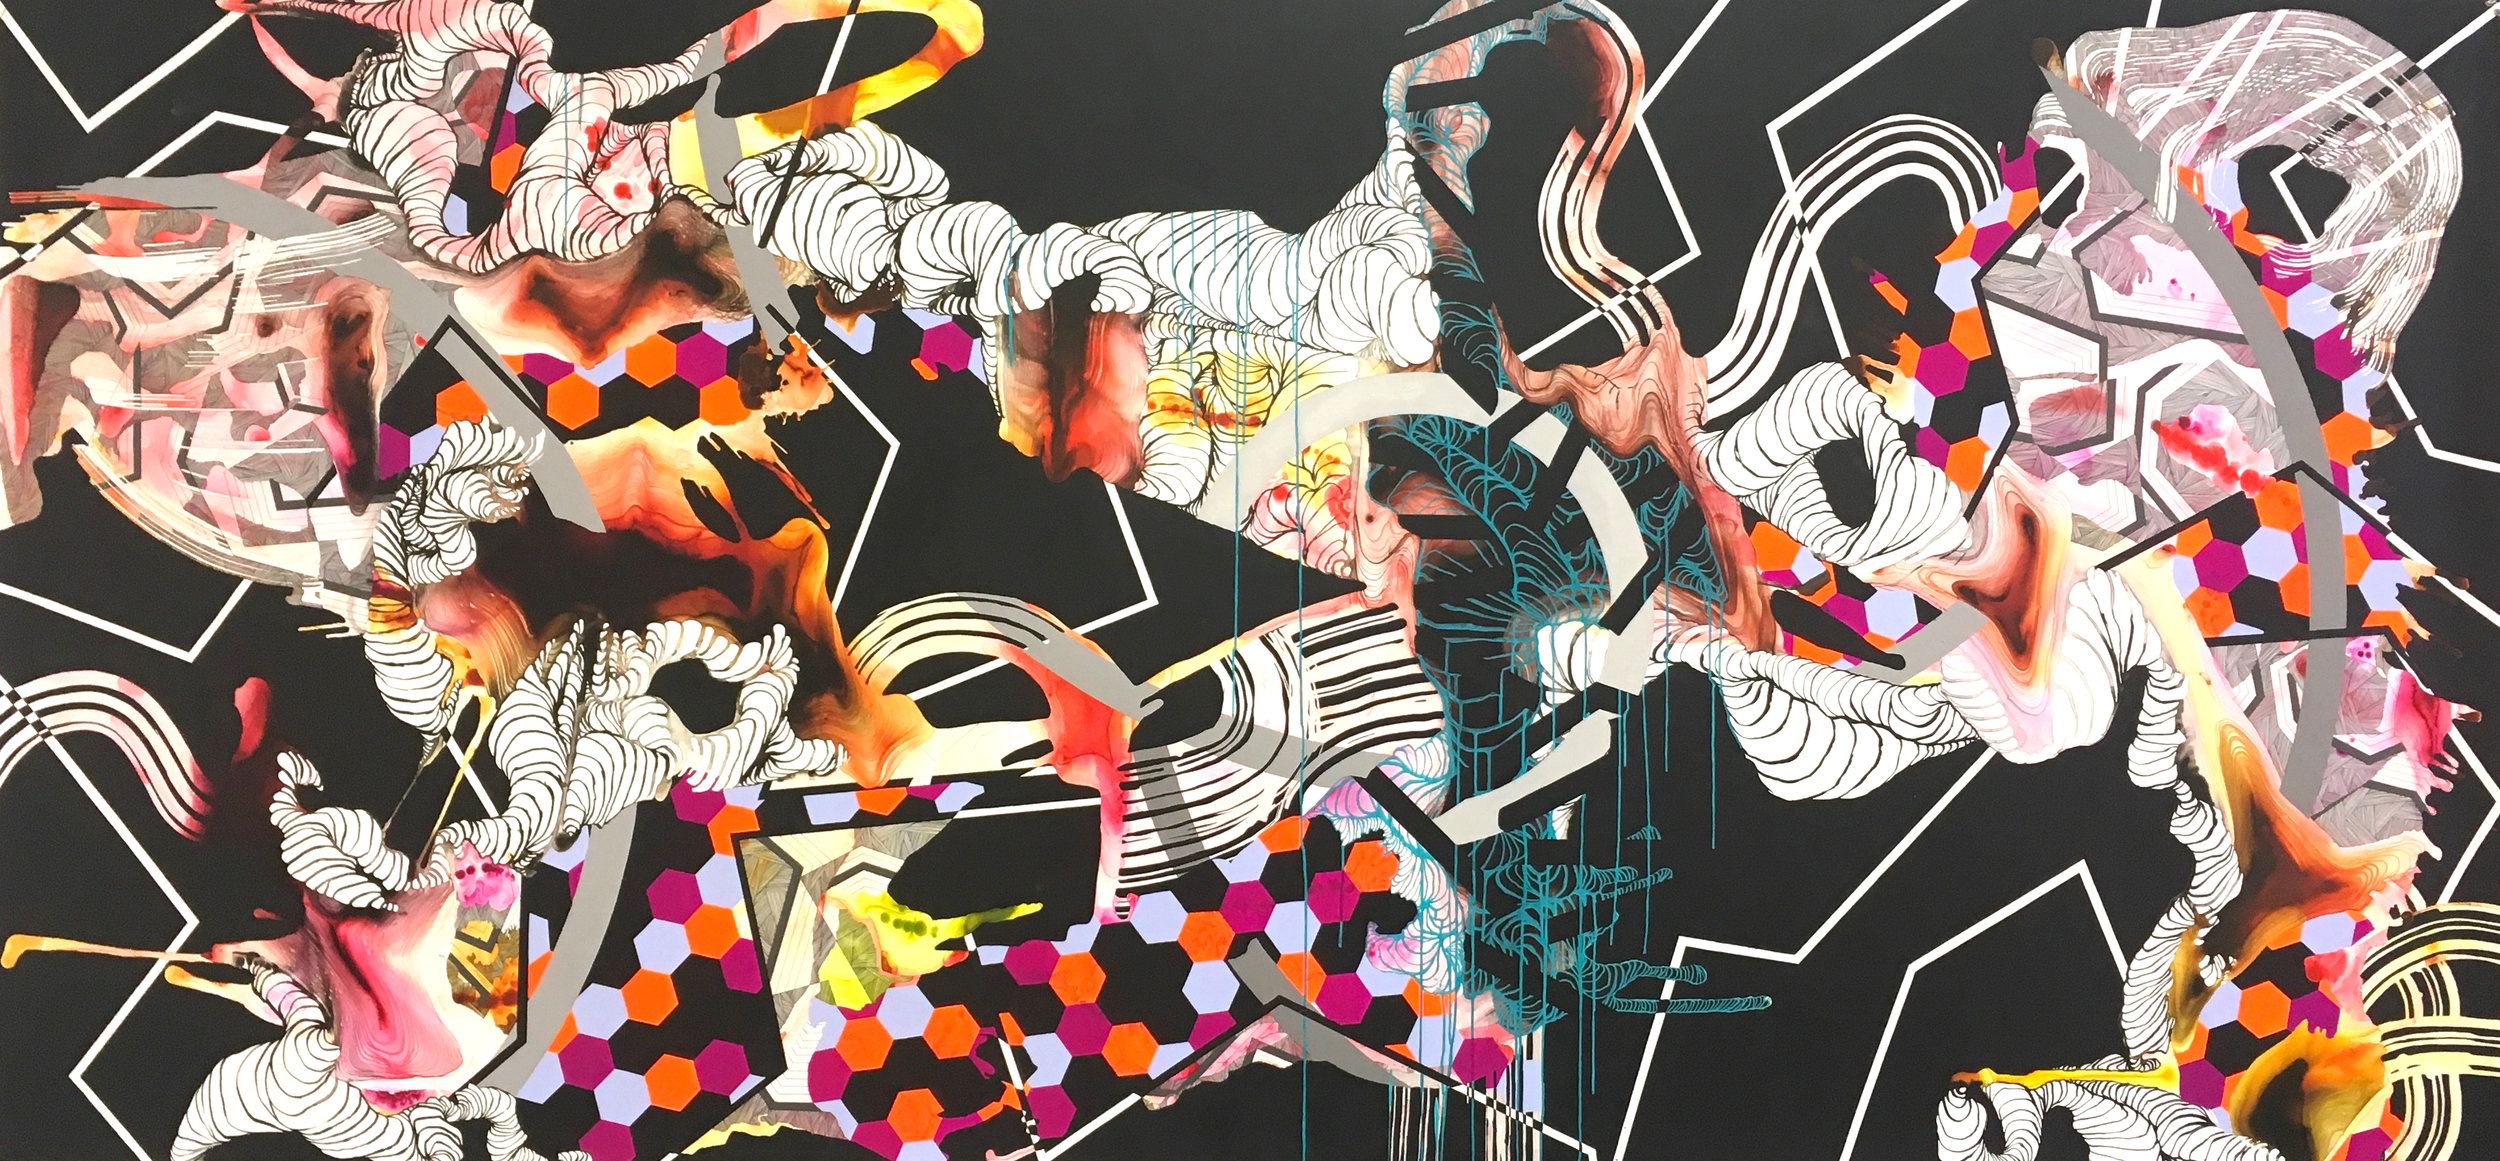 Panoramic Visions for a Fragmented Landscape, Orange Version I. Highflow acrylic, mixed media, and spray paint on yupo. 60in x 182in. 2017 .